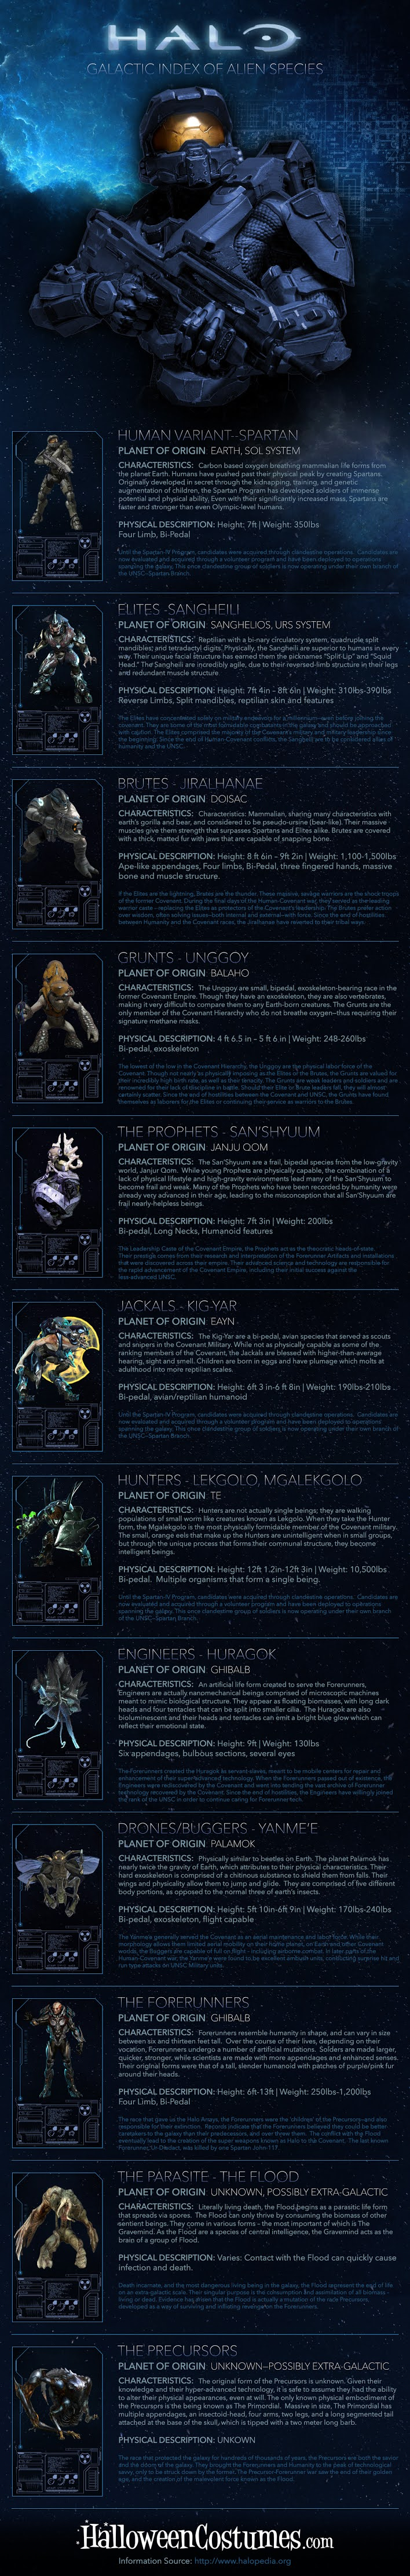 Halo Galactic Index of Alien Species #infographic